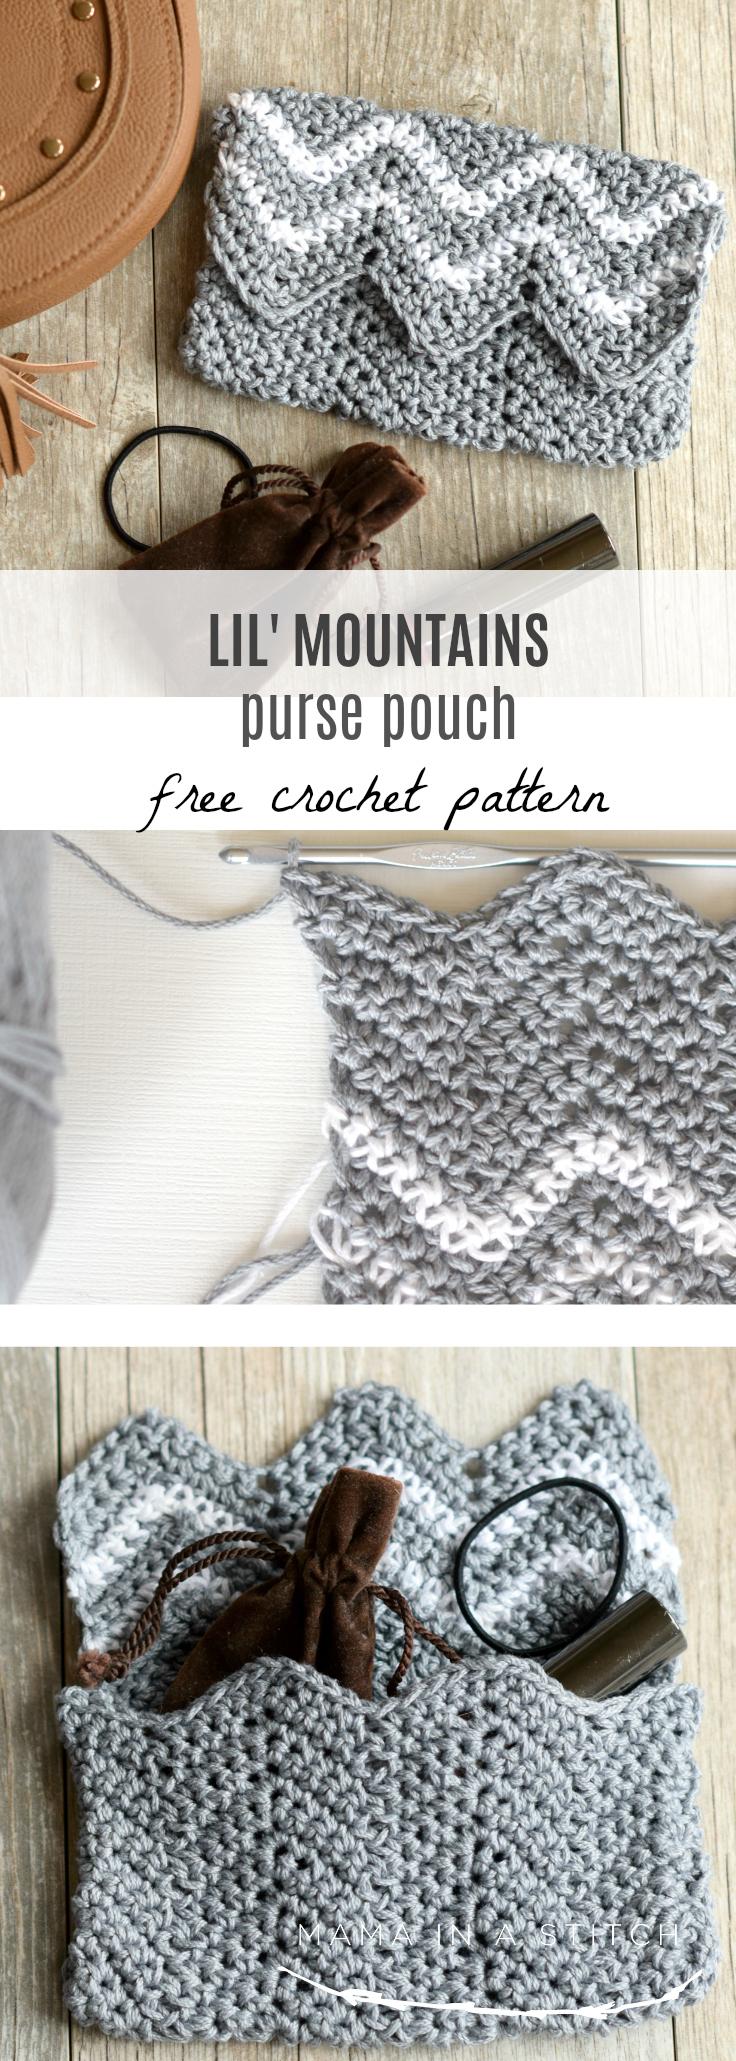 This works up so quickly and is so easy to crochet! Free pattern and it uses less than one skein of yarn. Great for your purse or even back to school! #freecrochetpattern #style #crafts #diy #backtoschool